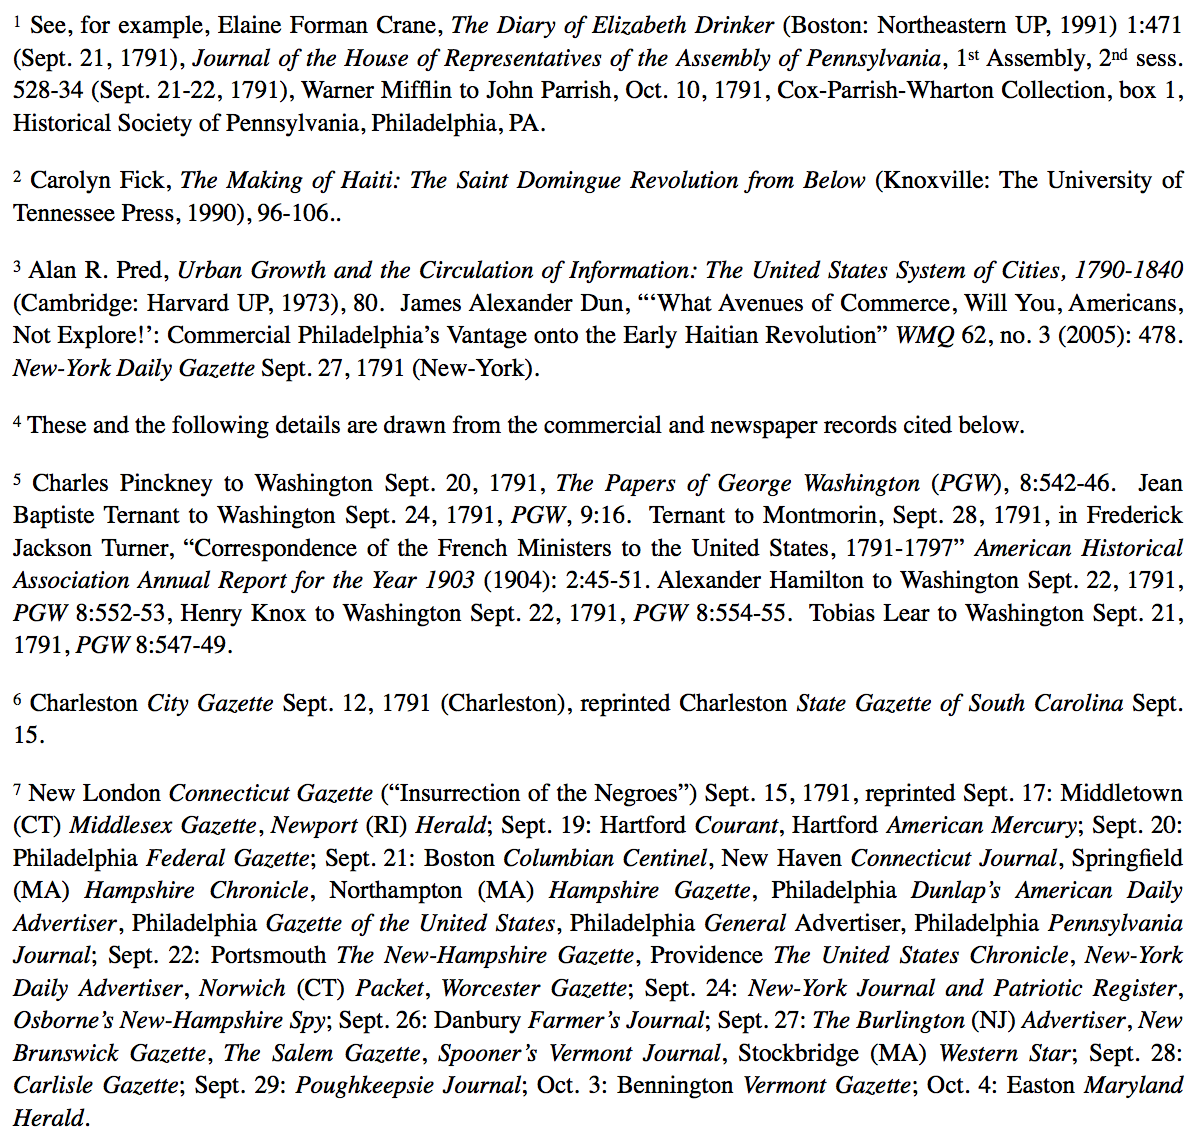 Endnotes to the article